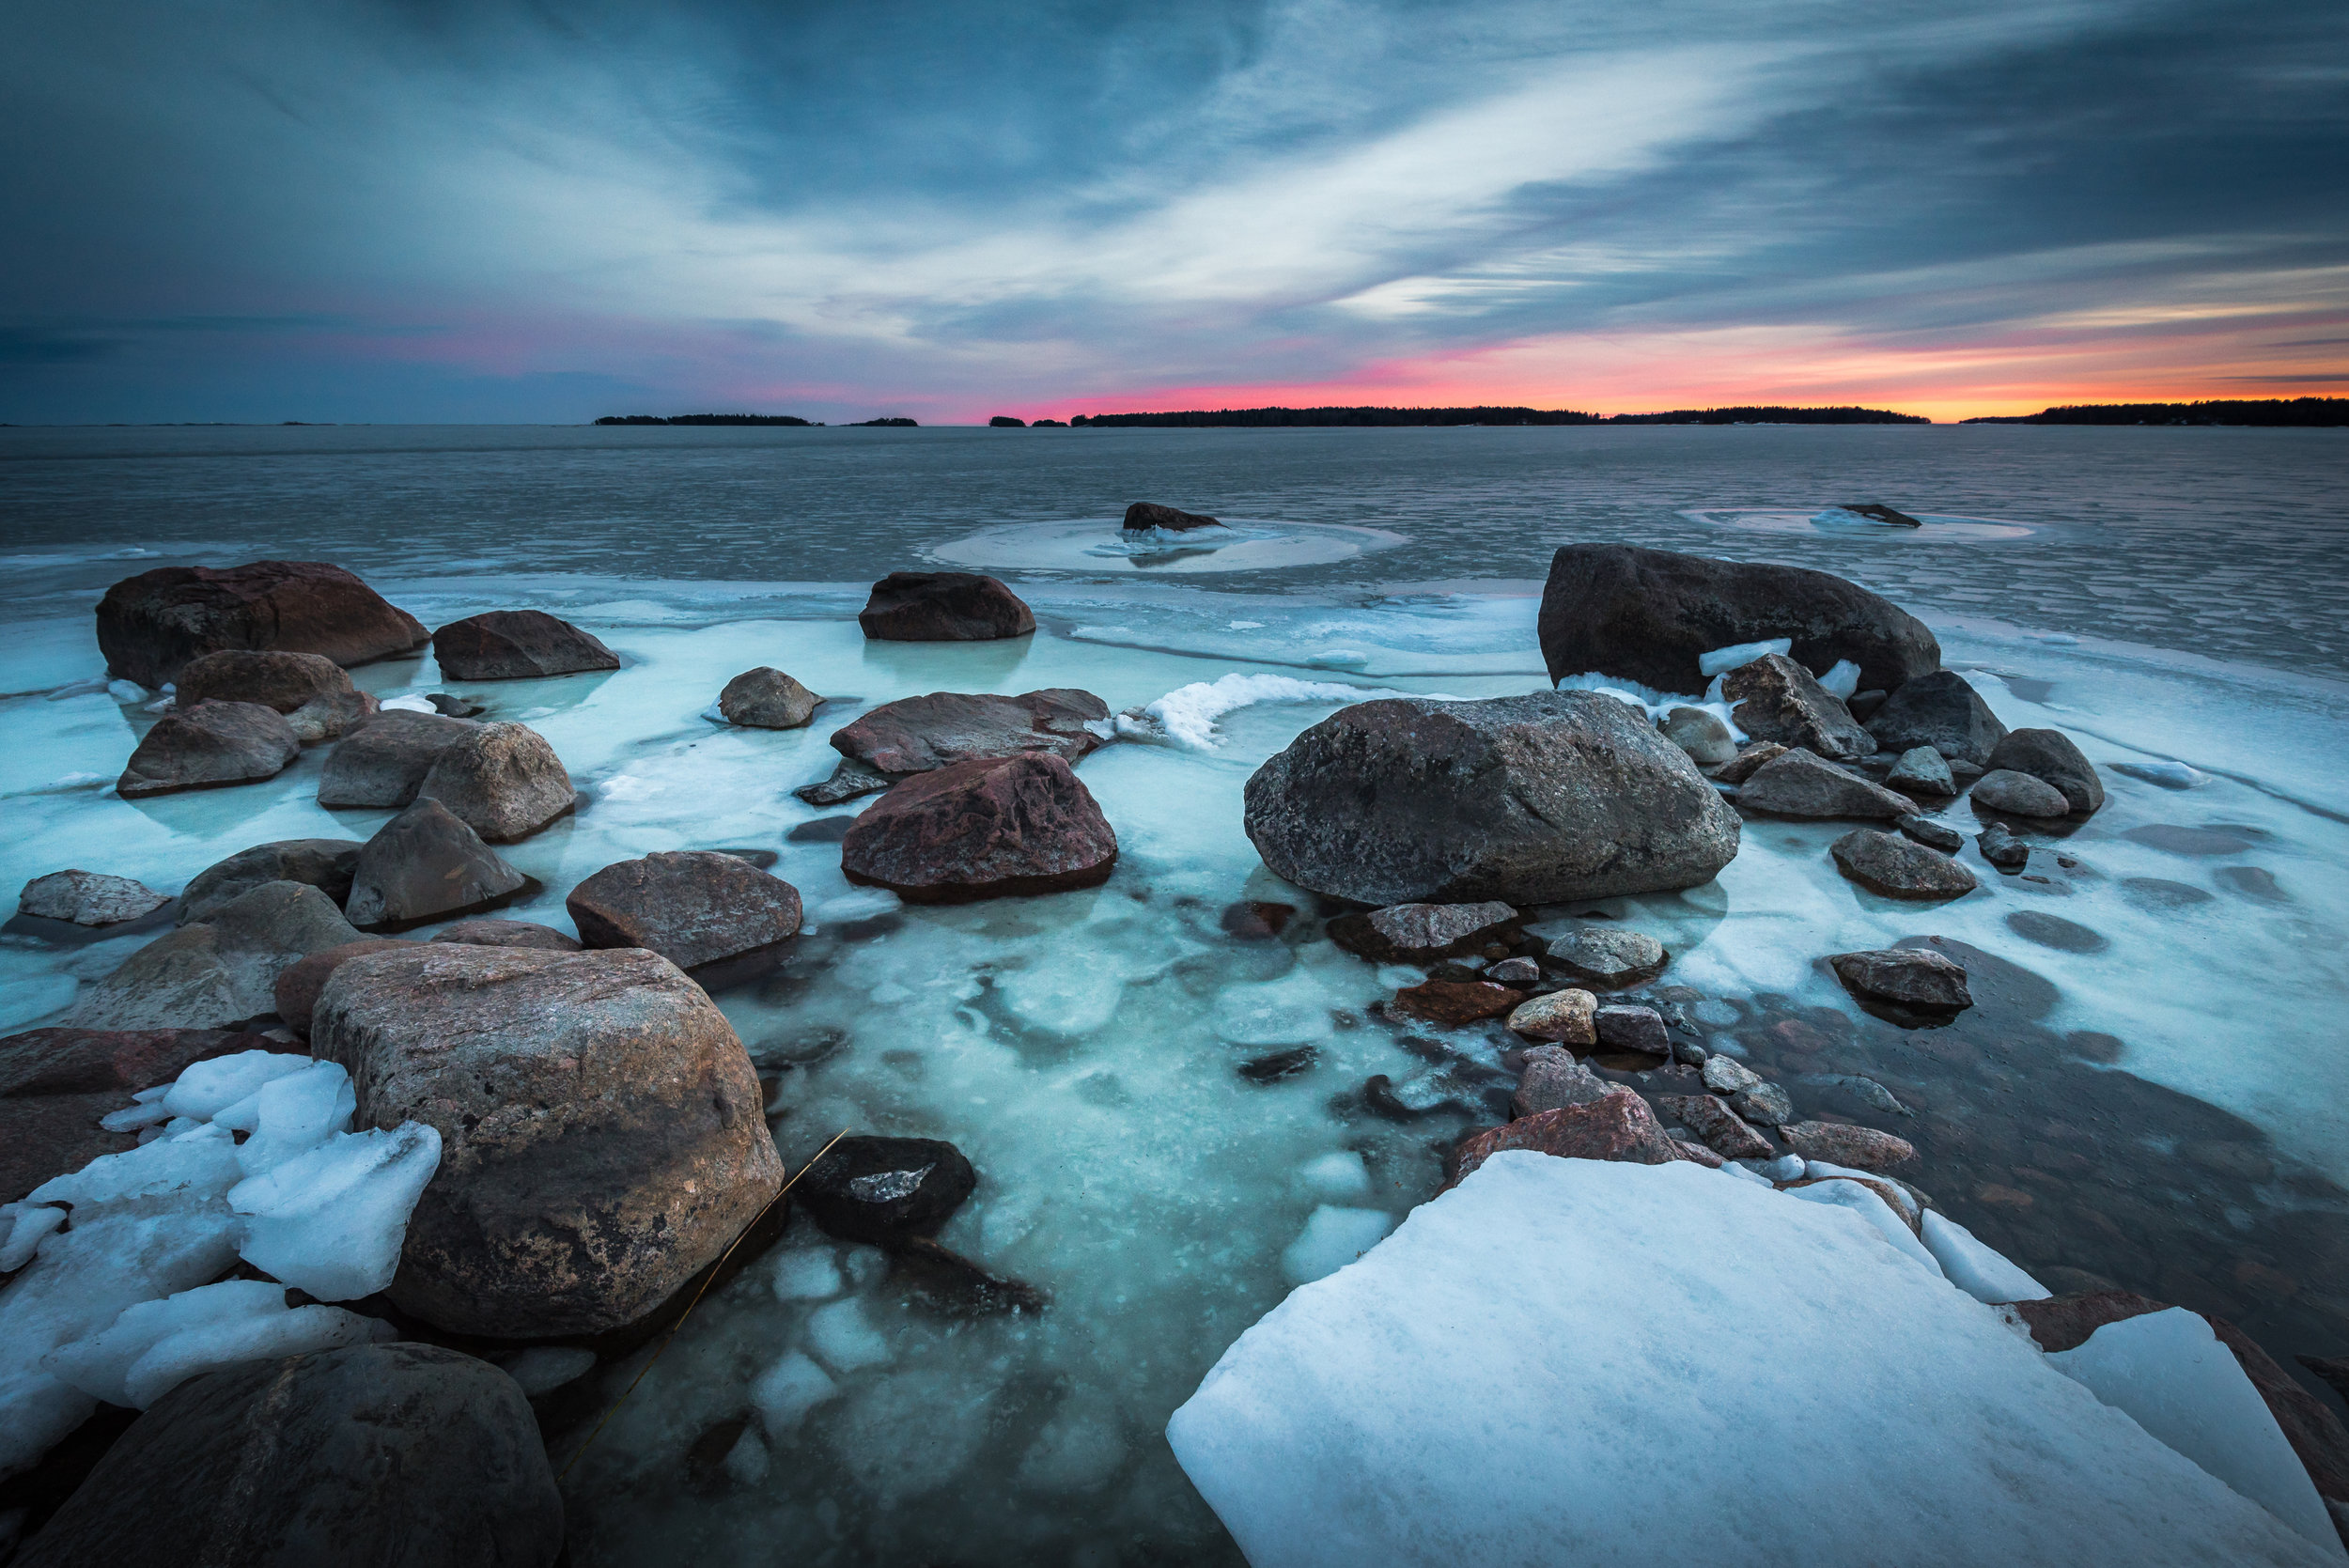 frozen-sea-landscape-winter-finland-thomas-drouault.jpg